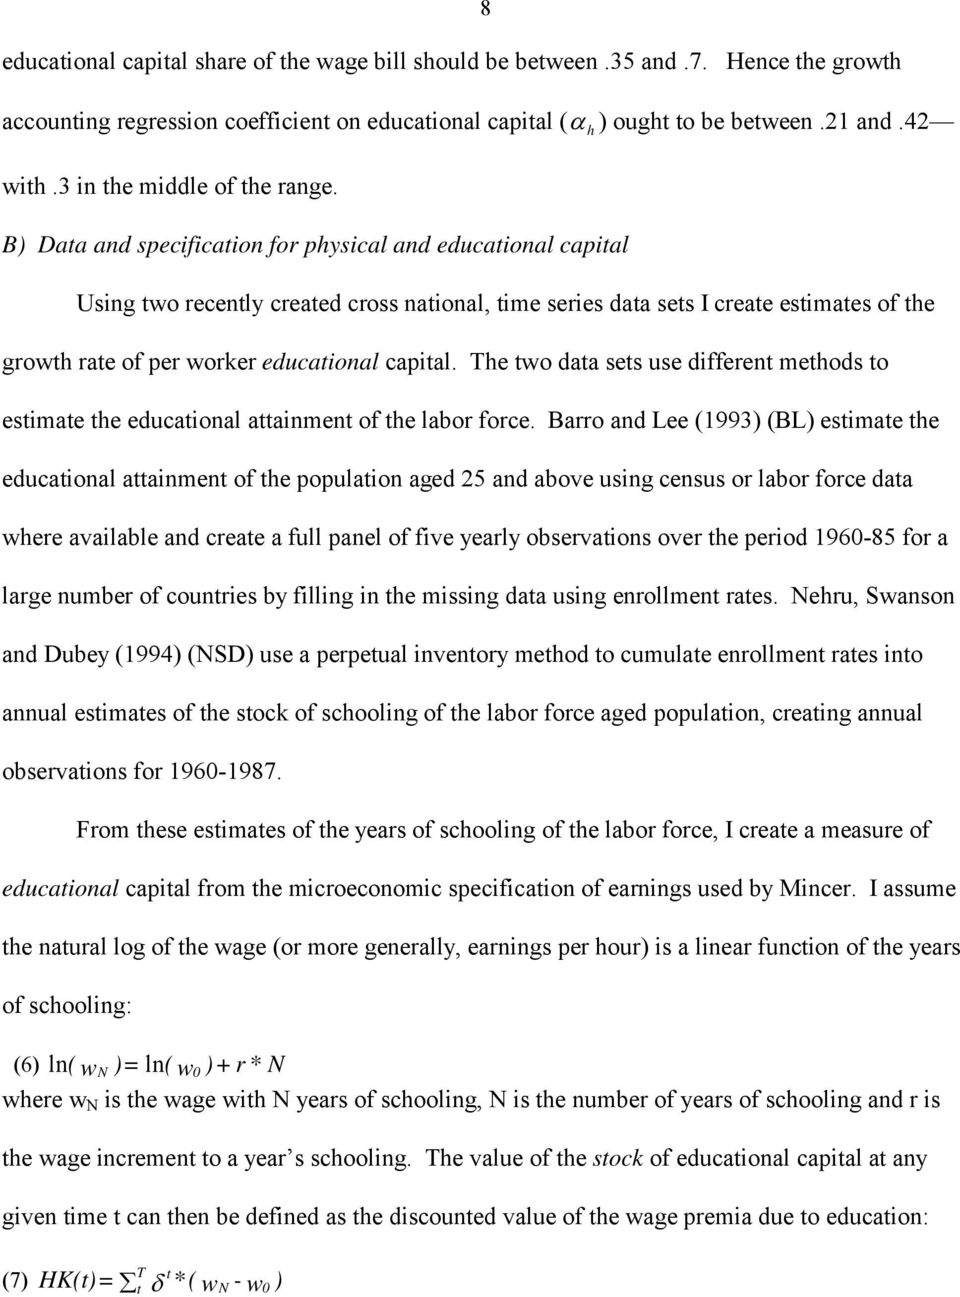 B) Data and specification for physical and educational capital Using two recently created cross national, time series data sets I create estimates of the growth rate of per worker educational capital.